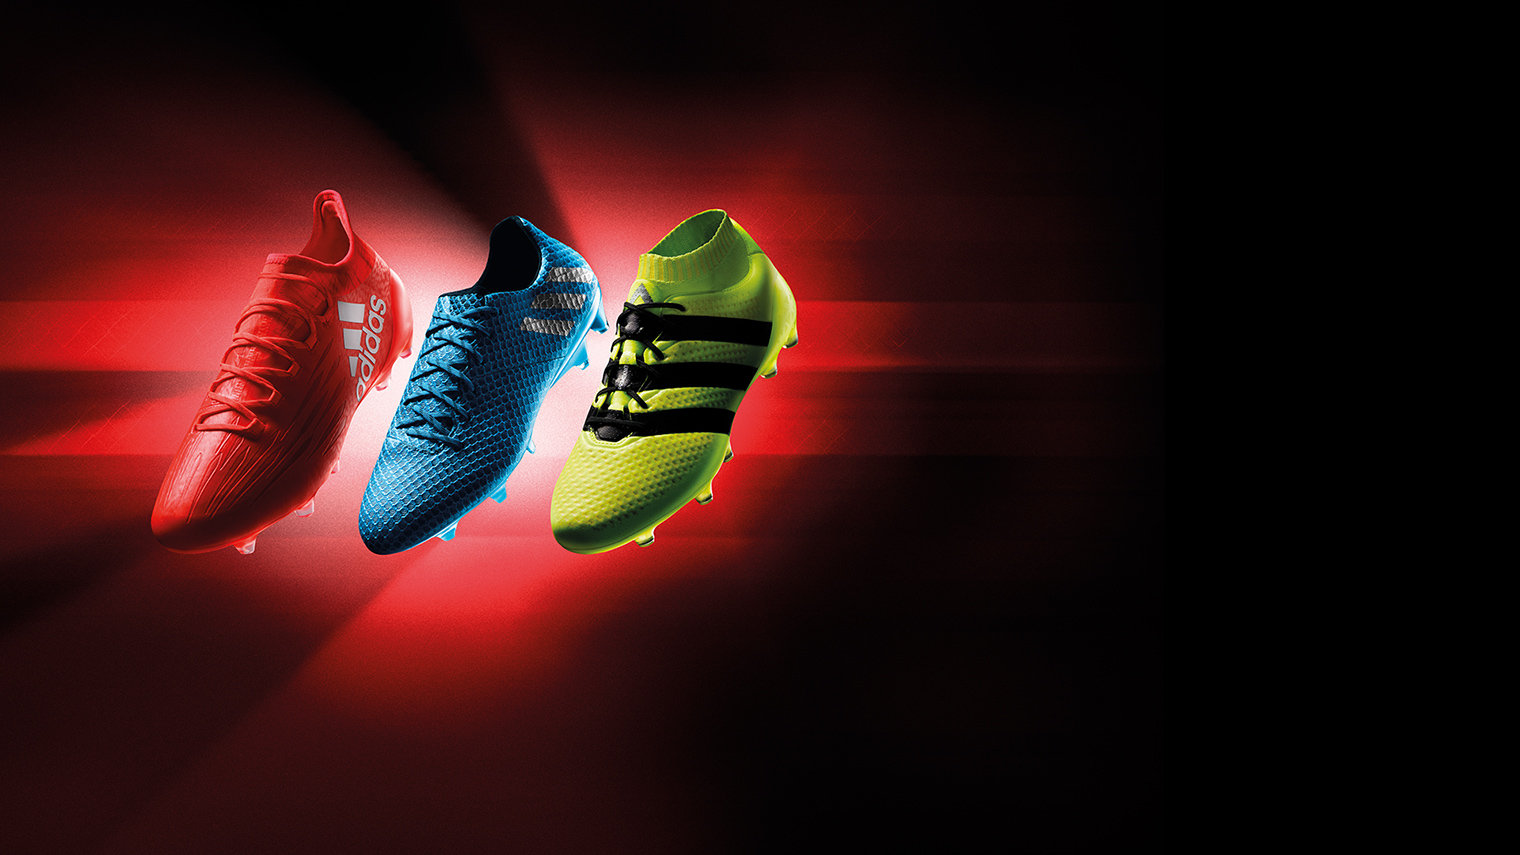 New adidas Speed of light cleats collection!